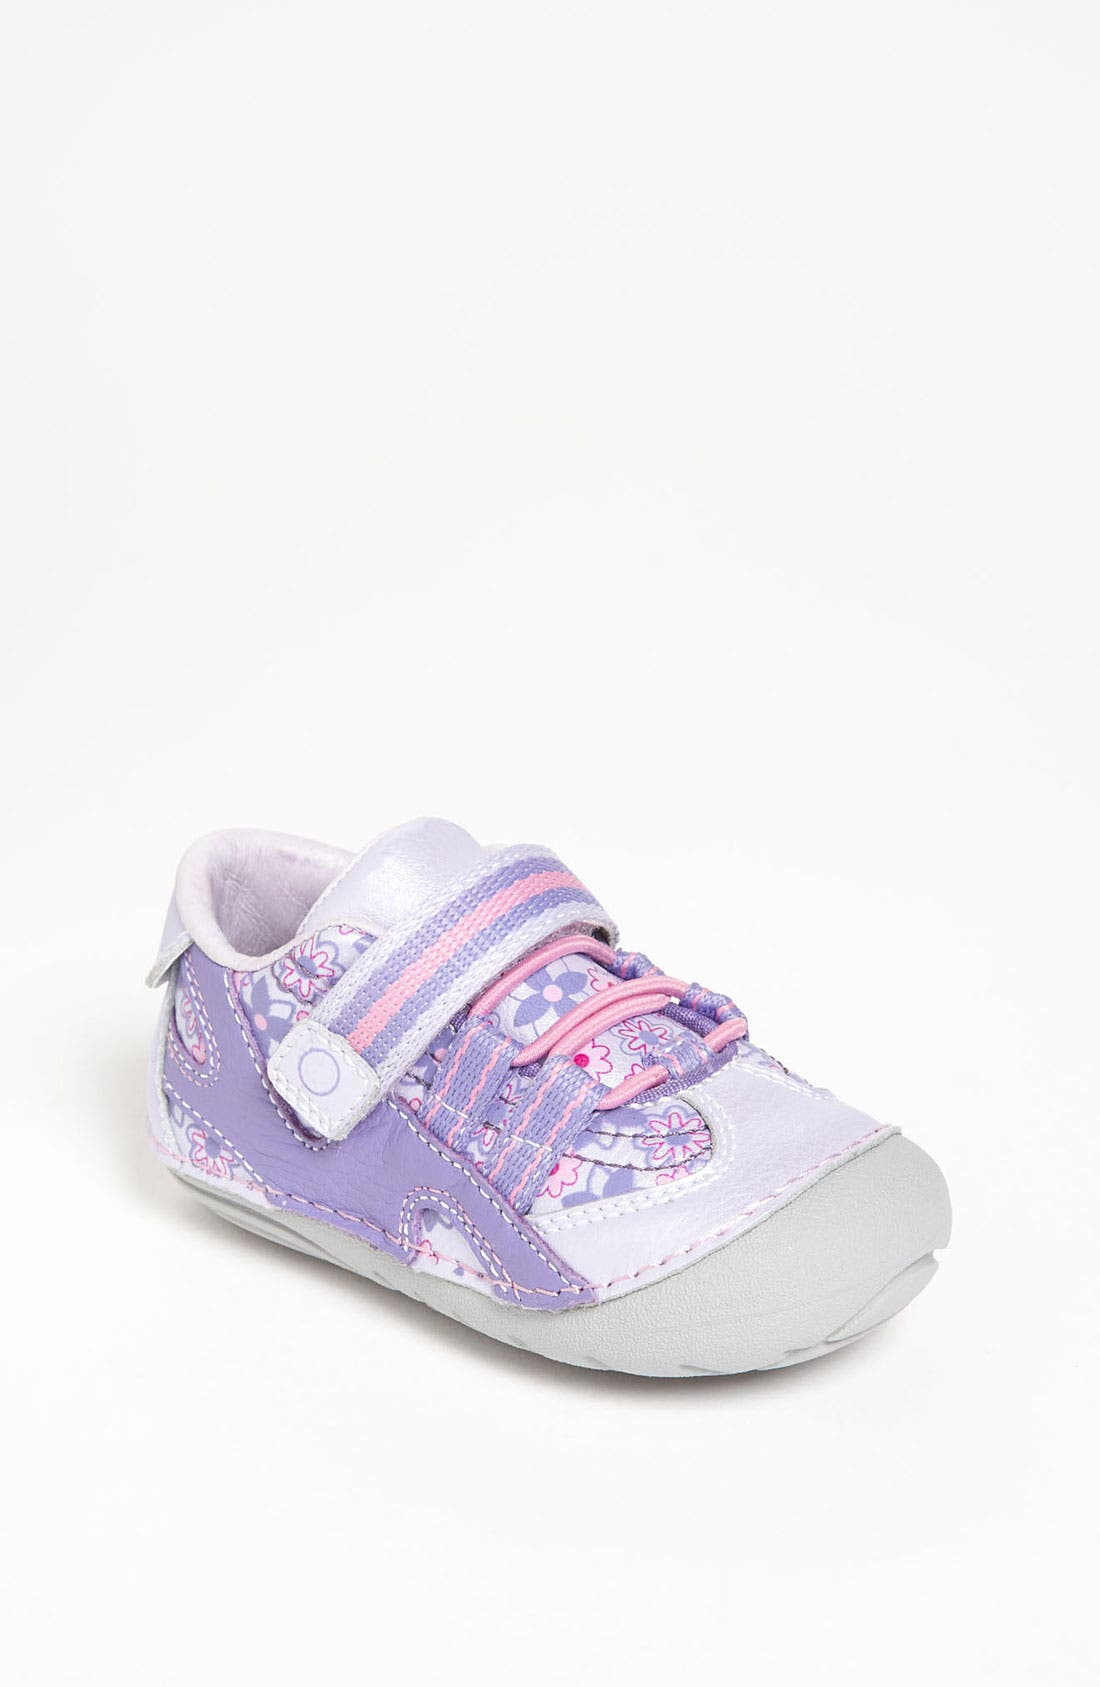 Main Image - Stride Rite 'Stephanie' Sneaker (Baby & Walker)